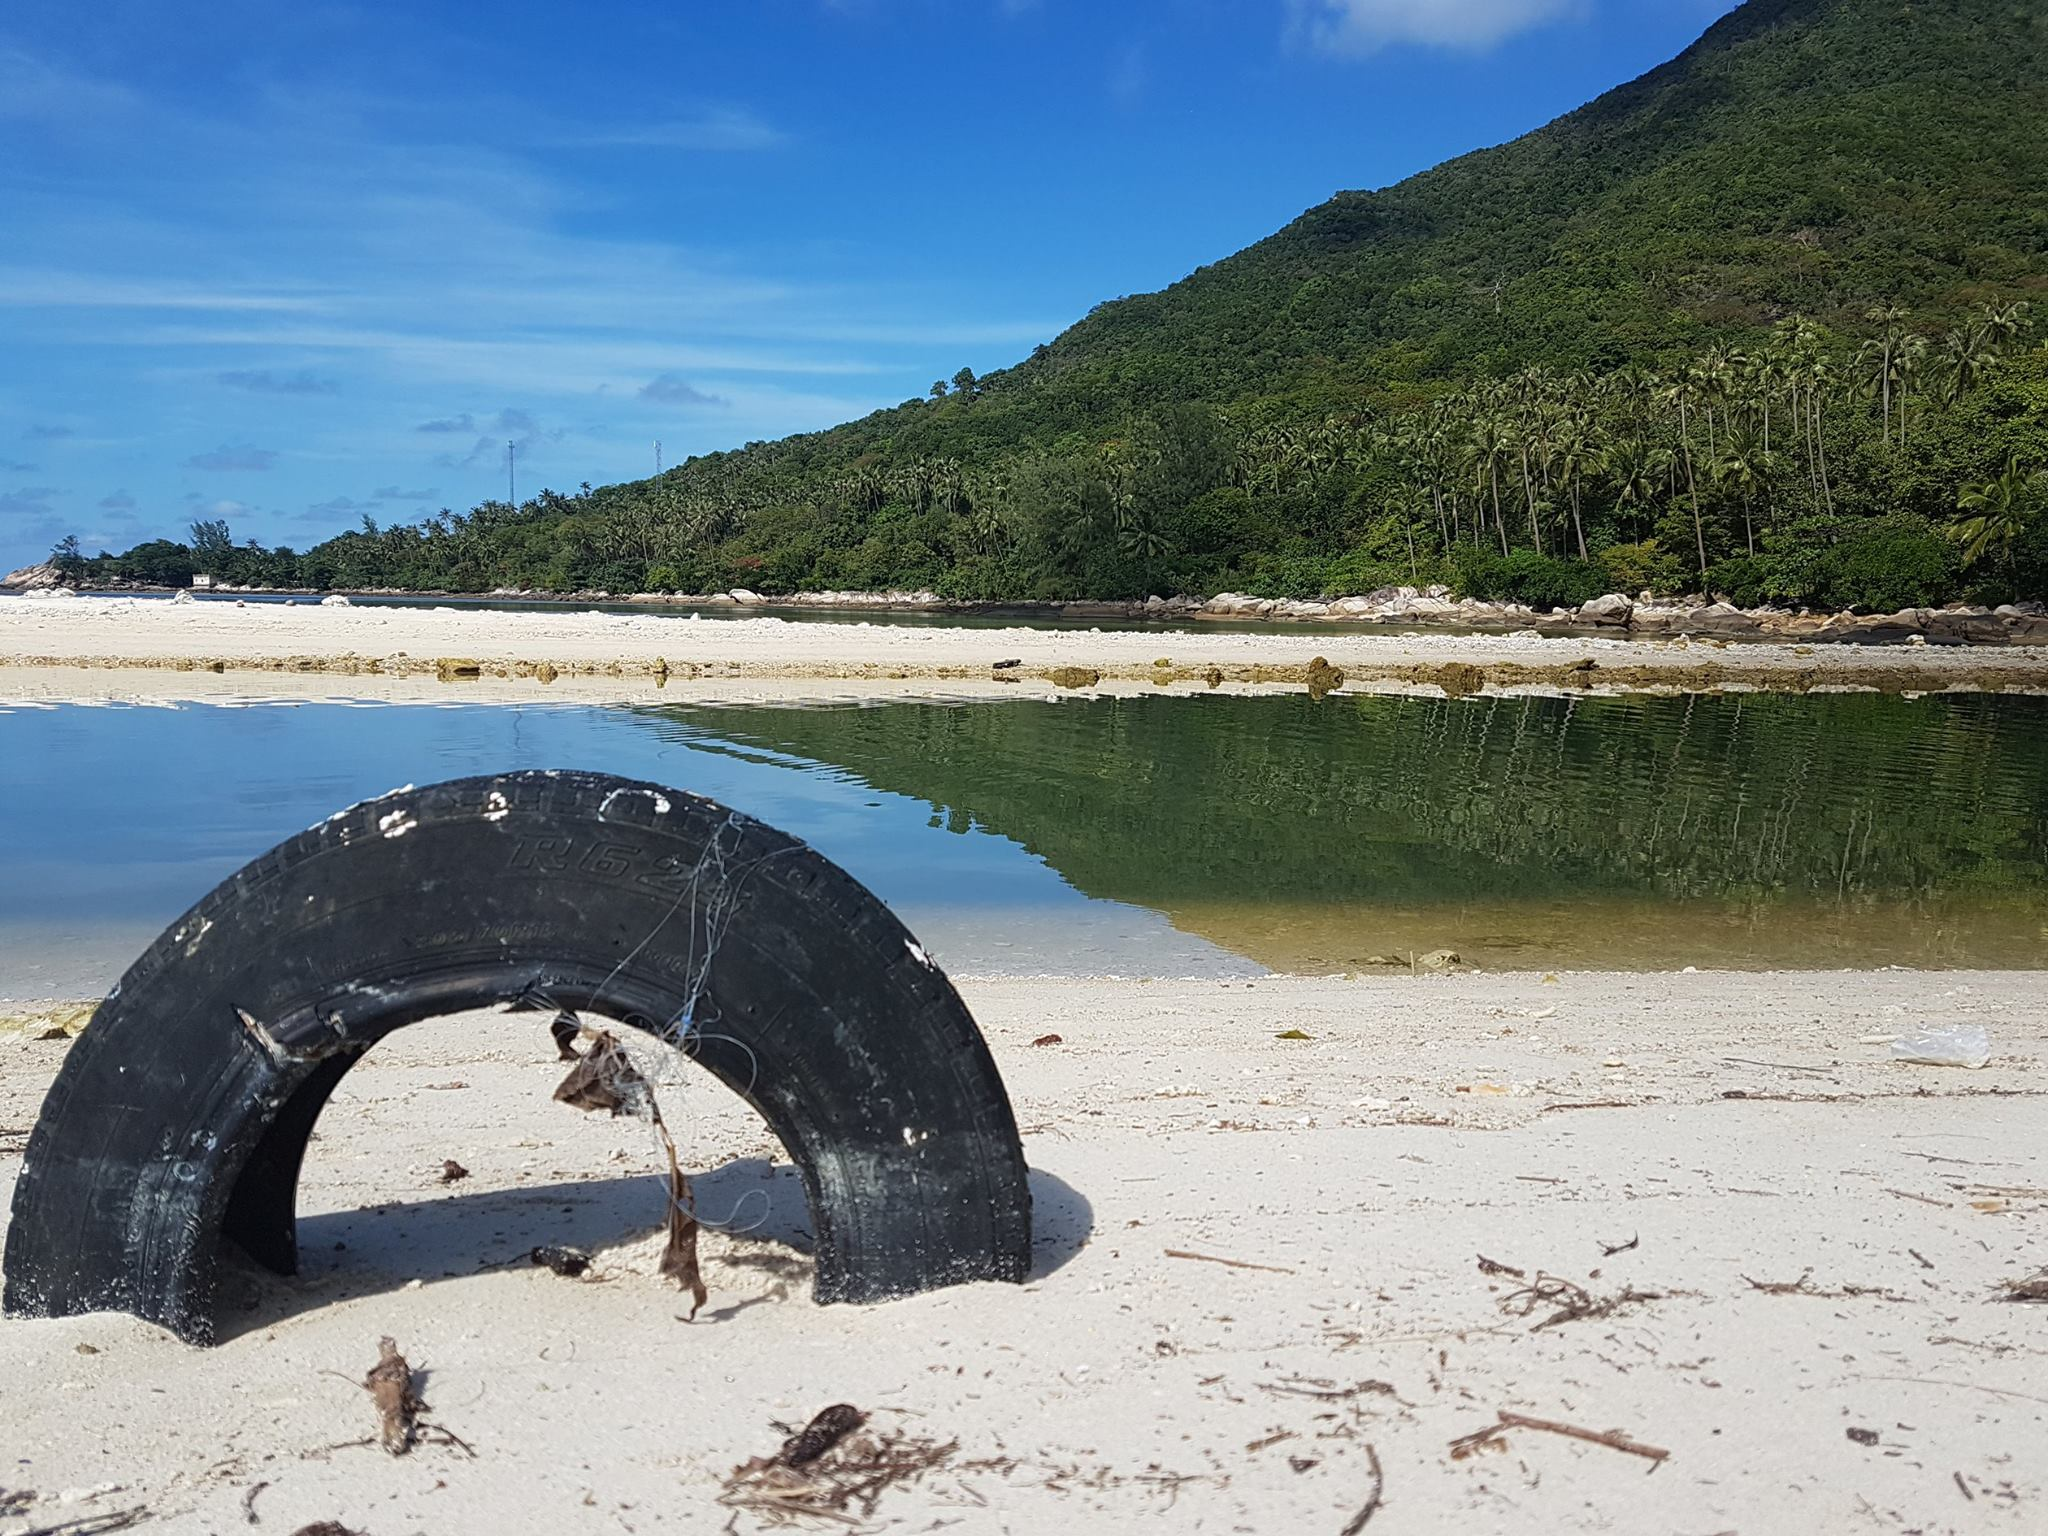 A tyre buried in the sand at Chaloklum-Koh Phangan